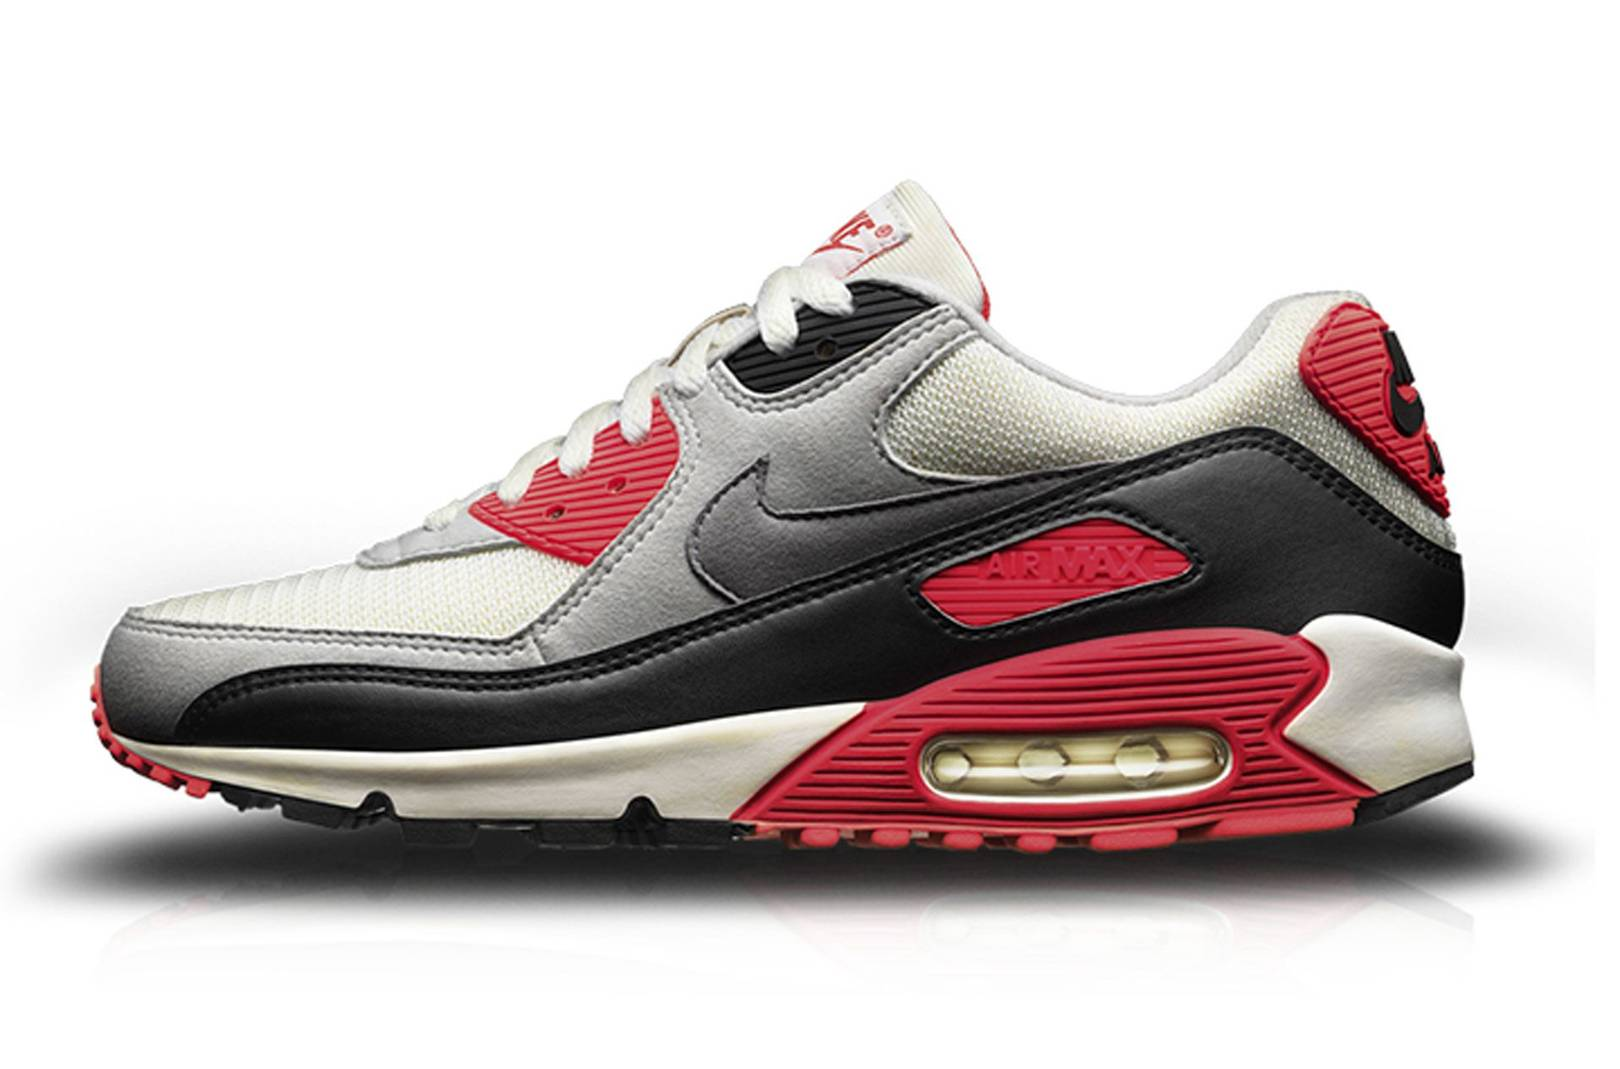 cf2d18b3bde London exhibition  G.O.A.T Sneakers  lists the 25 greatest trainers of all  time